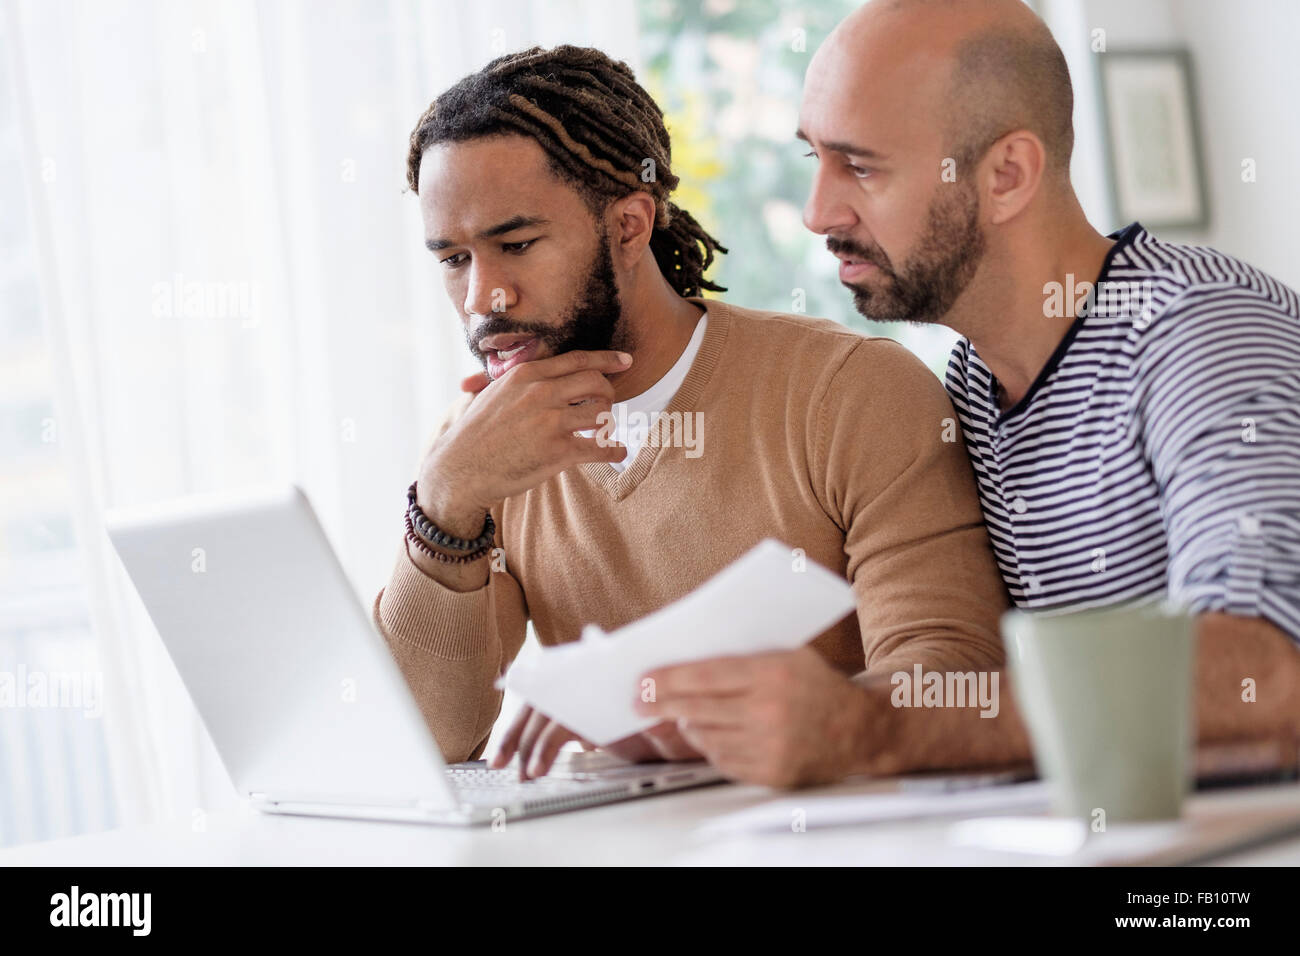 Deux hommes travaillant avec laptop at home Photo Stock